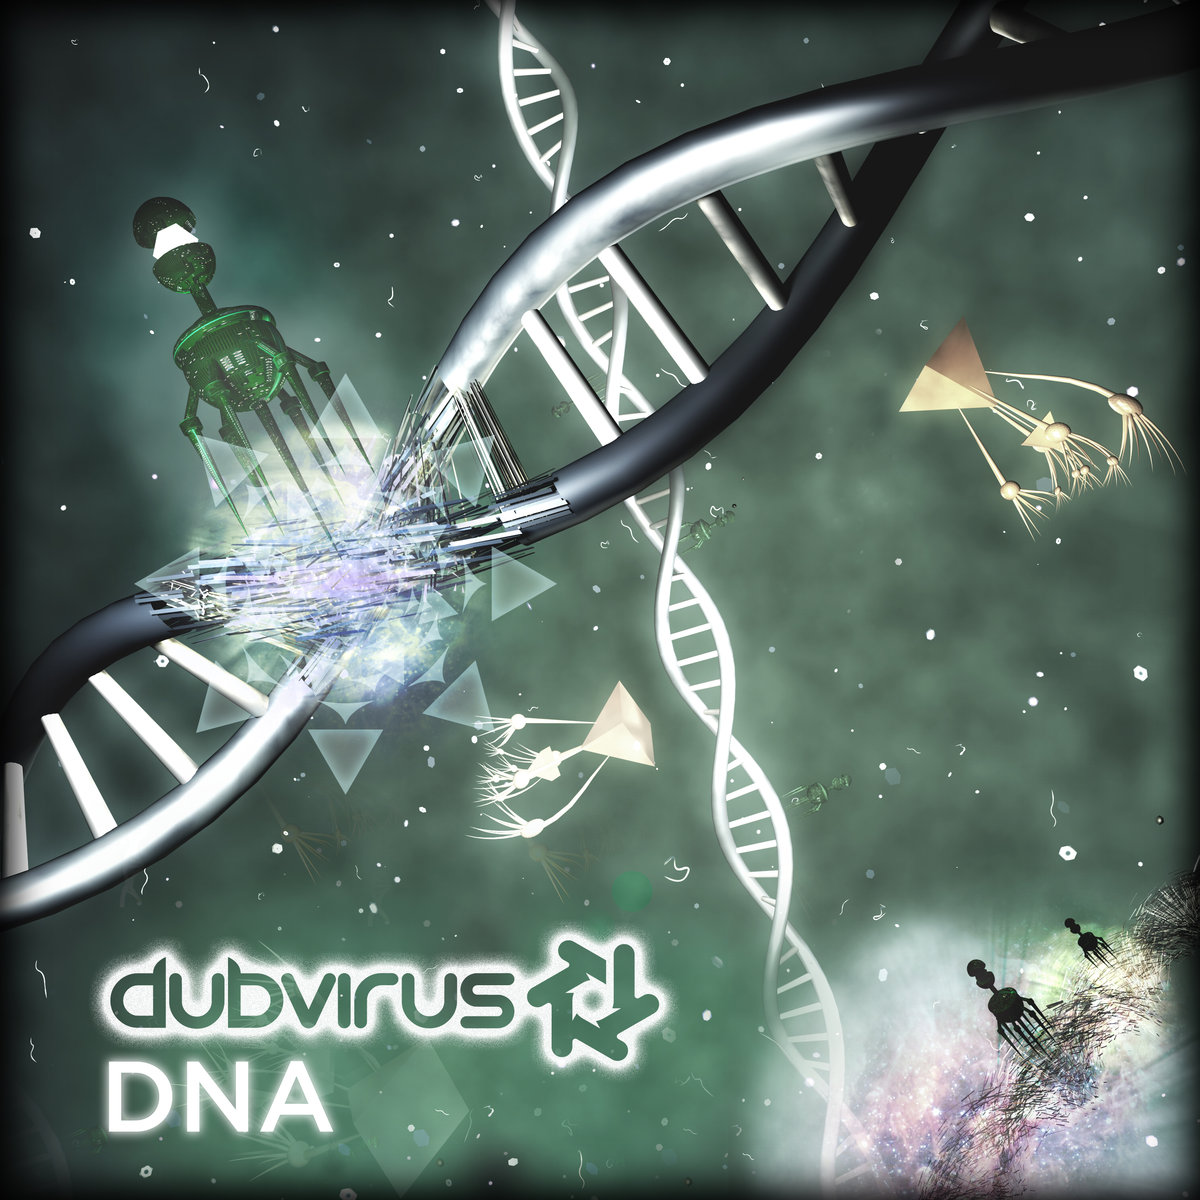 Dubvirus - DNA @ 'DNA' album (bass, dubstep)